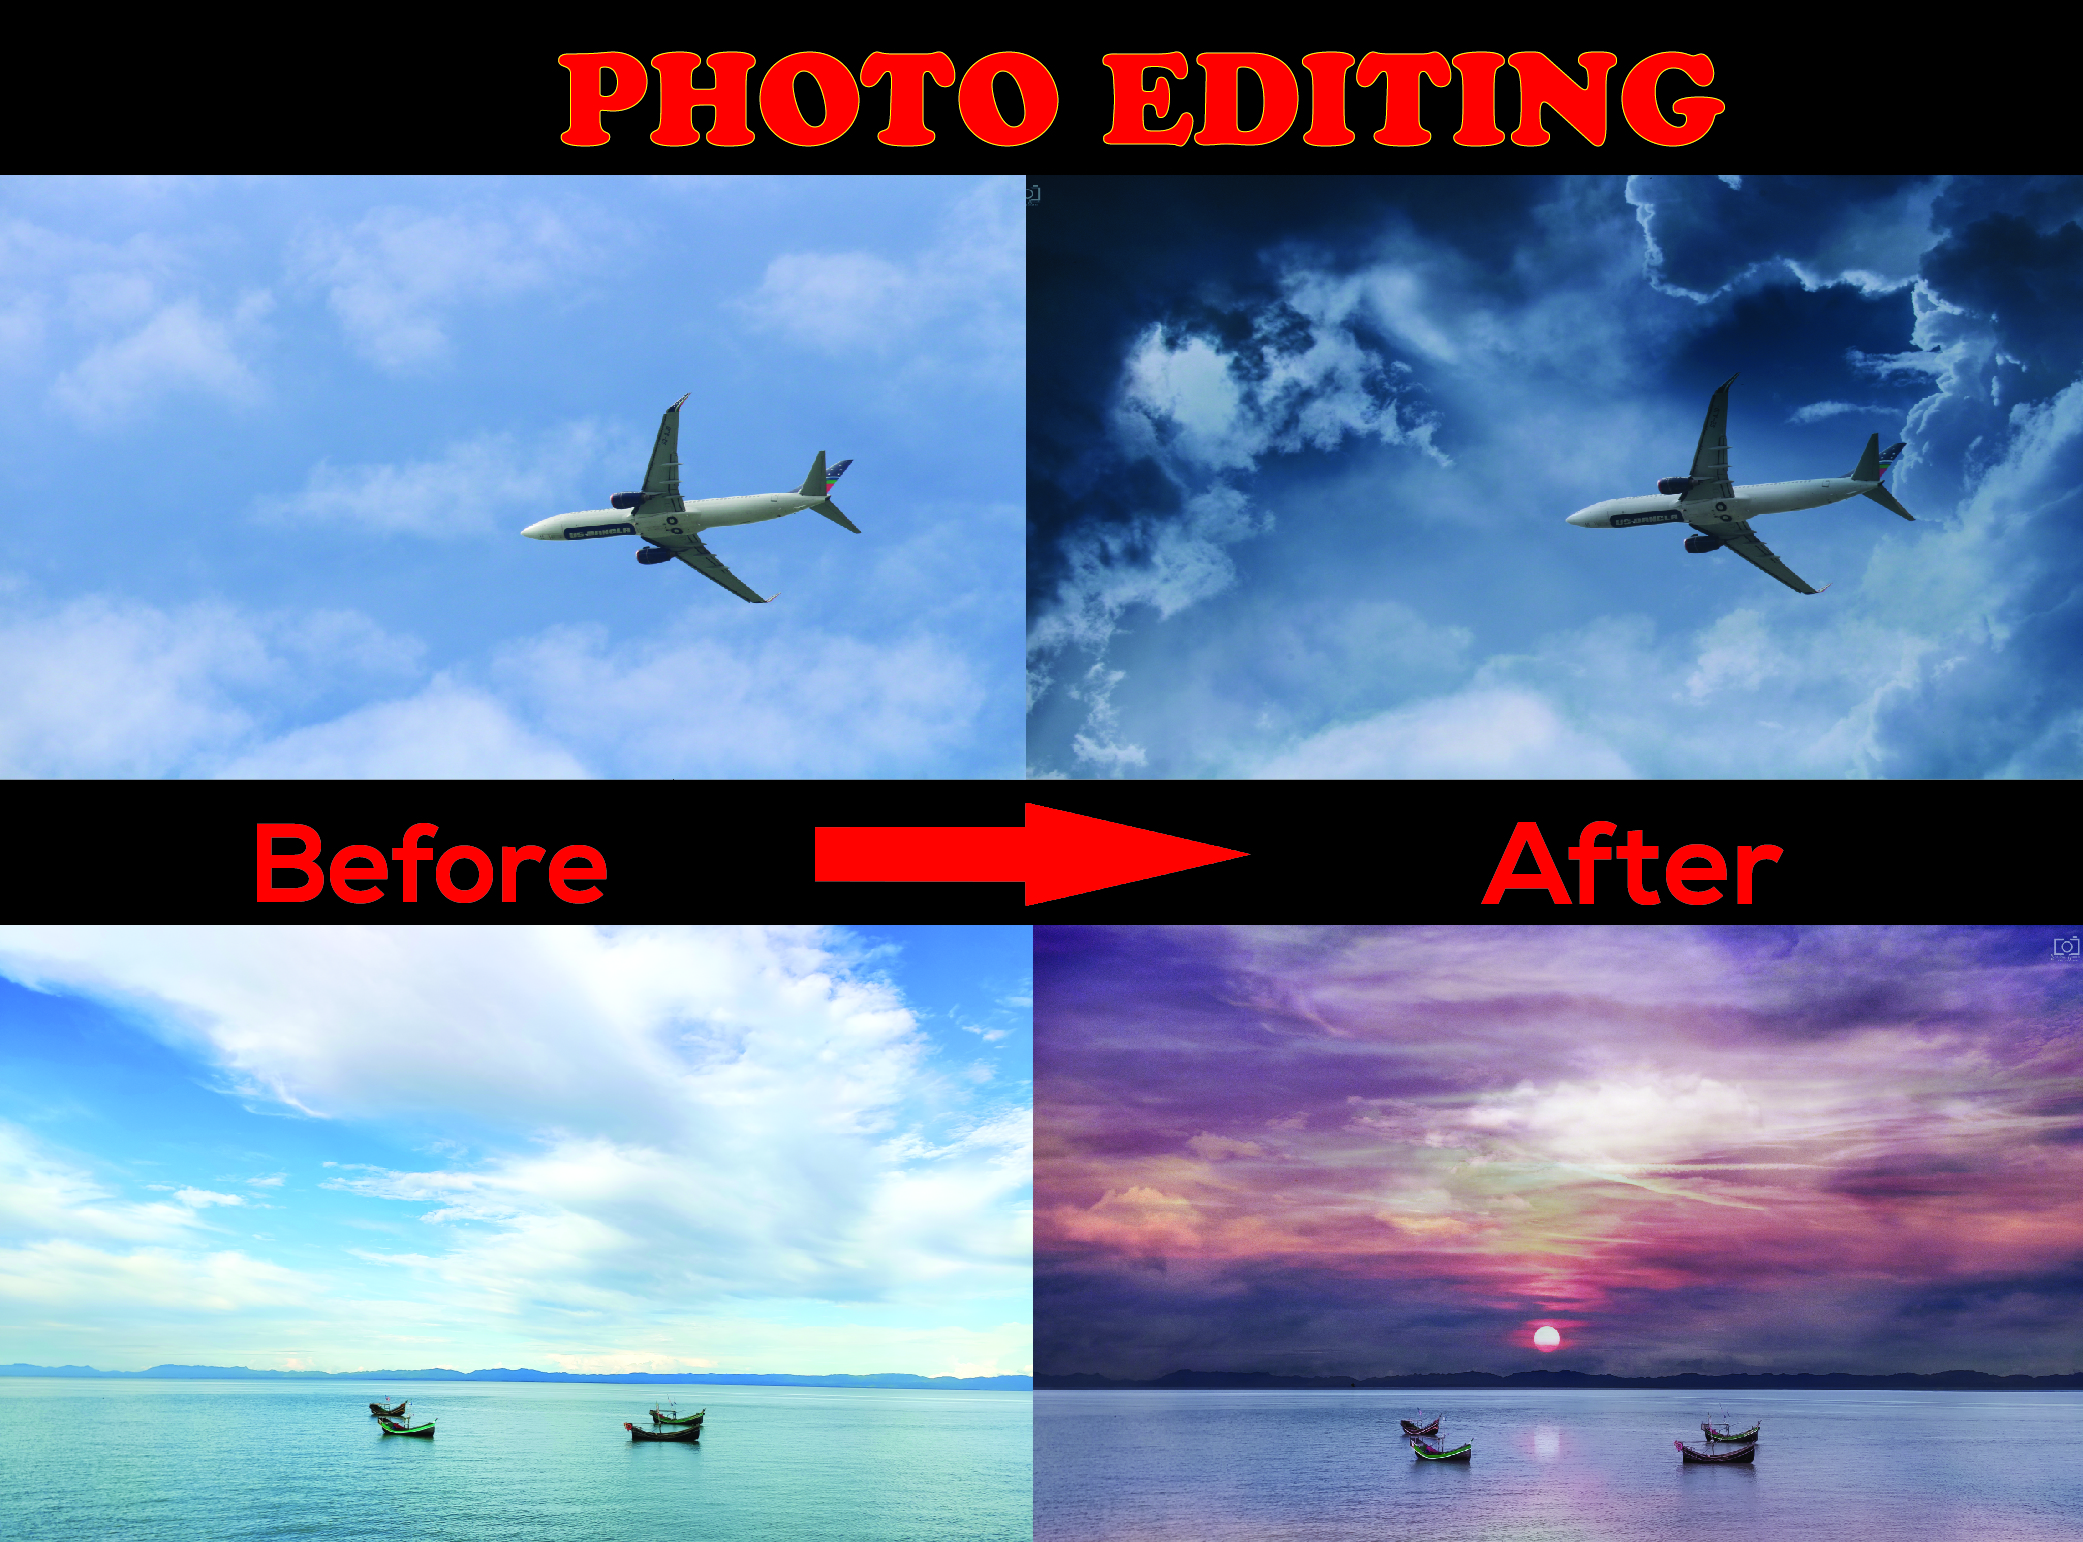 I will do image manipulation and editing